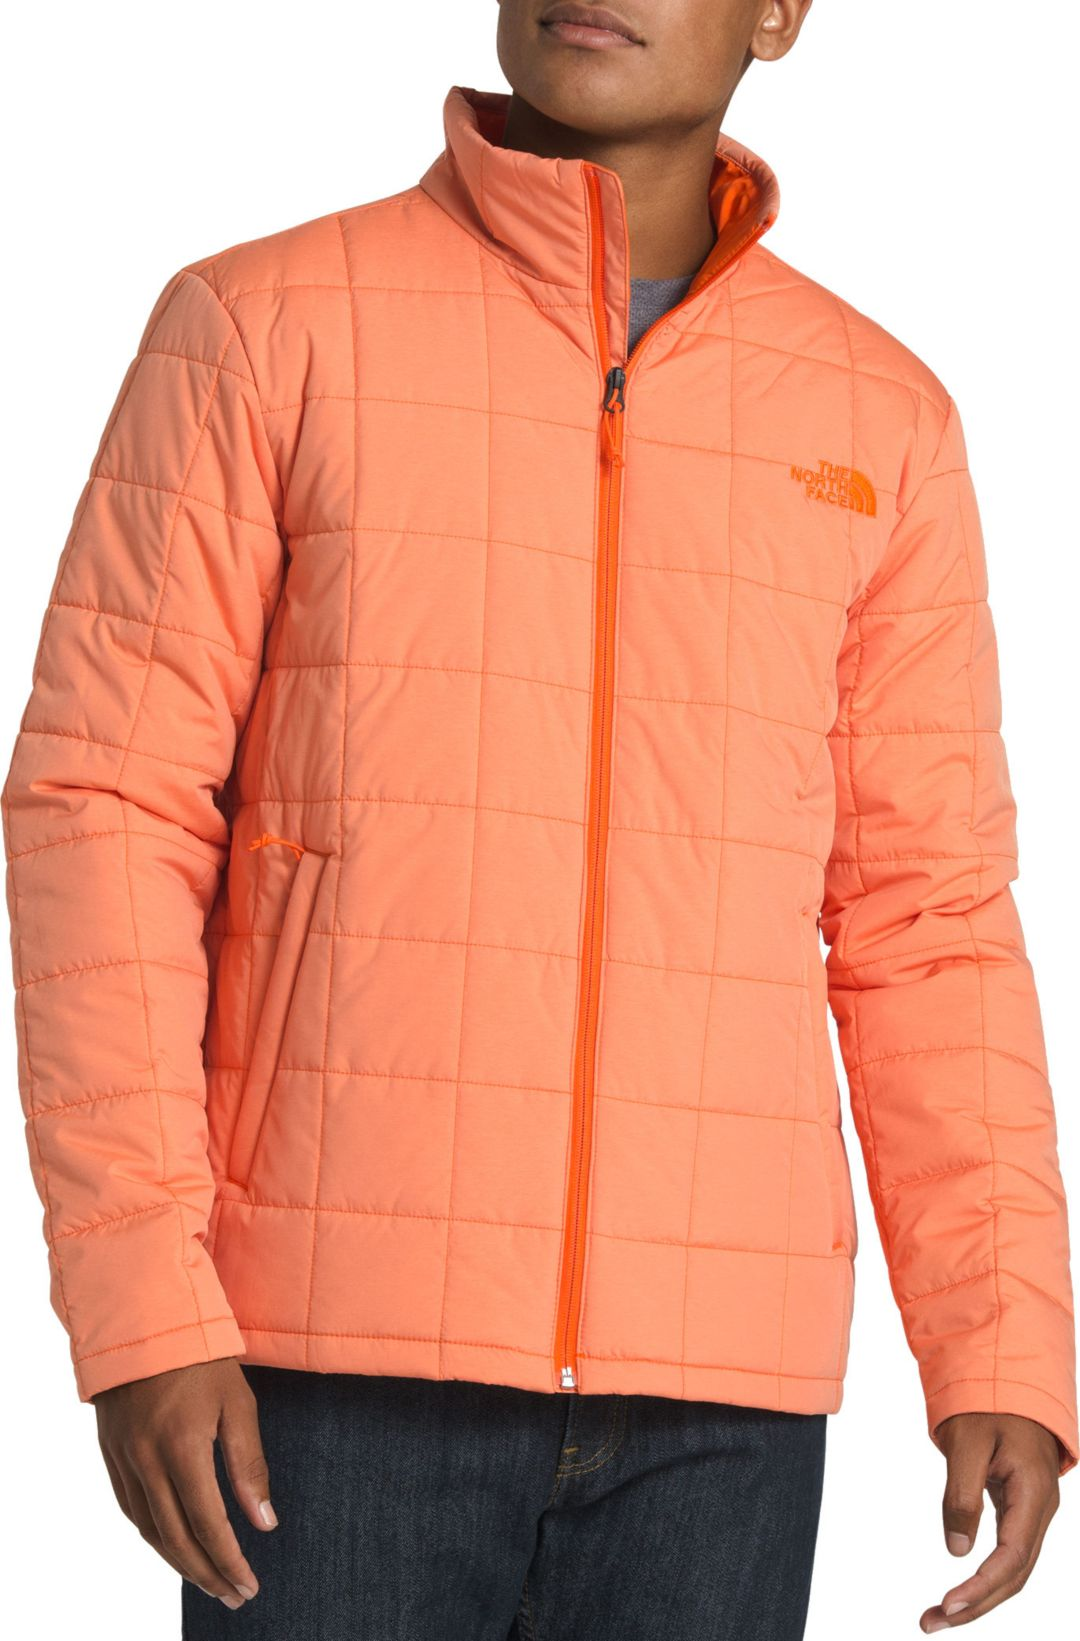 b8a153c2f The North Face Men's Harway Insulated Jacket